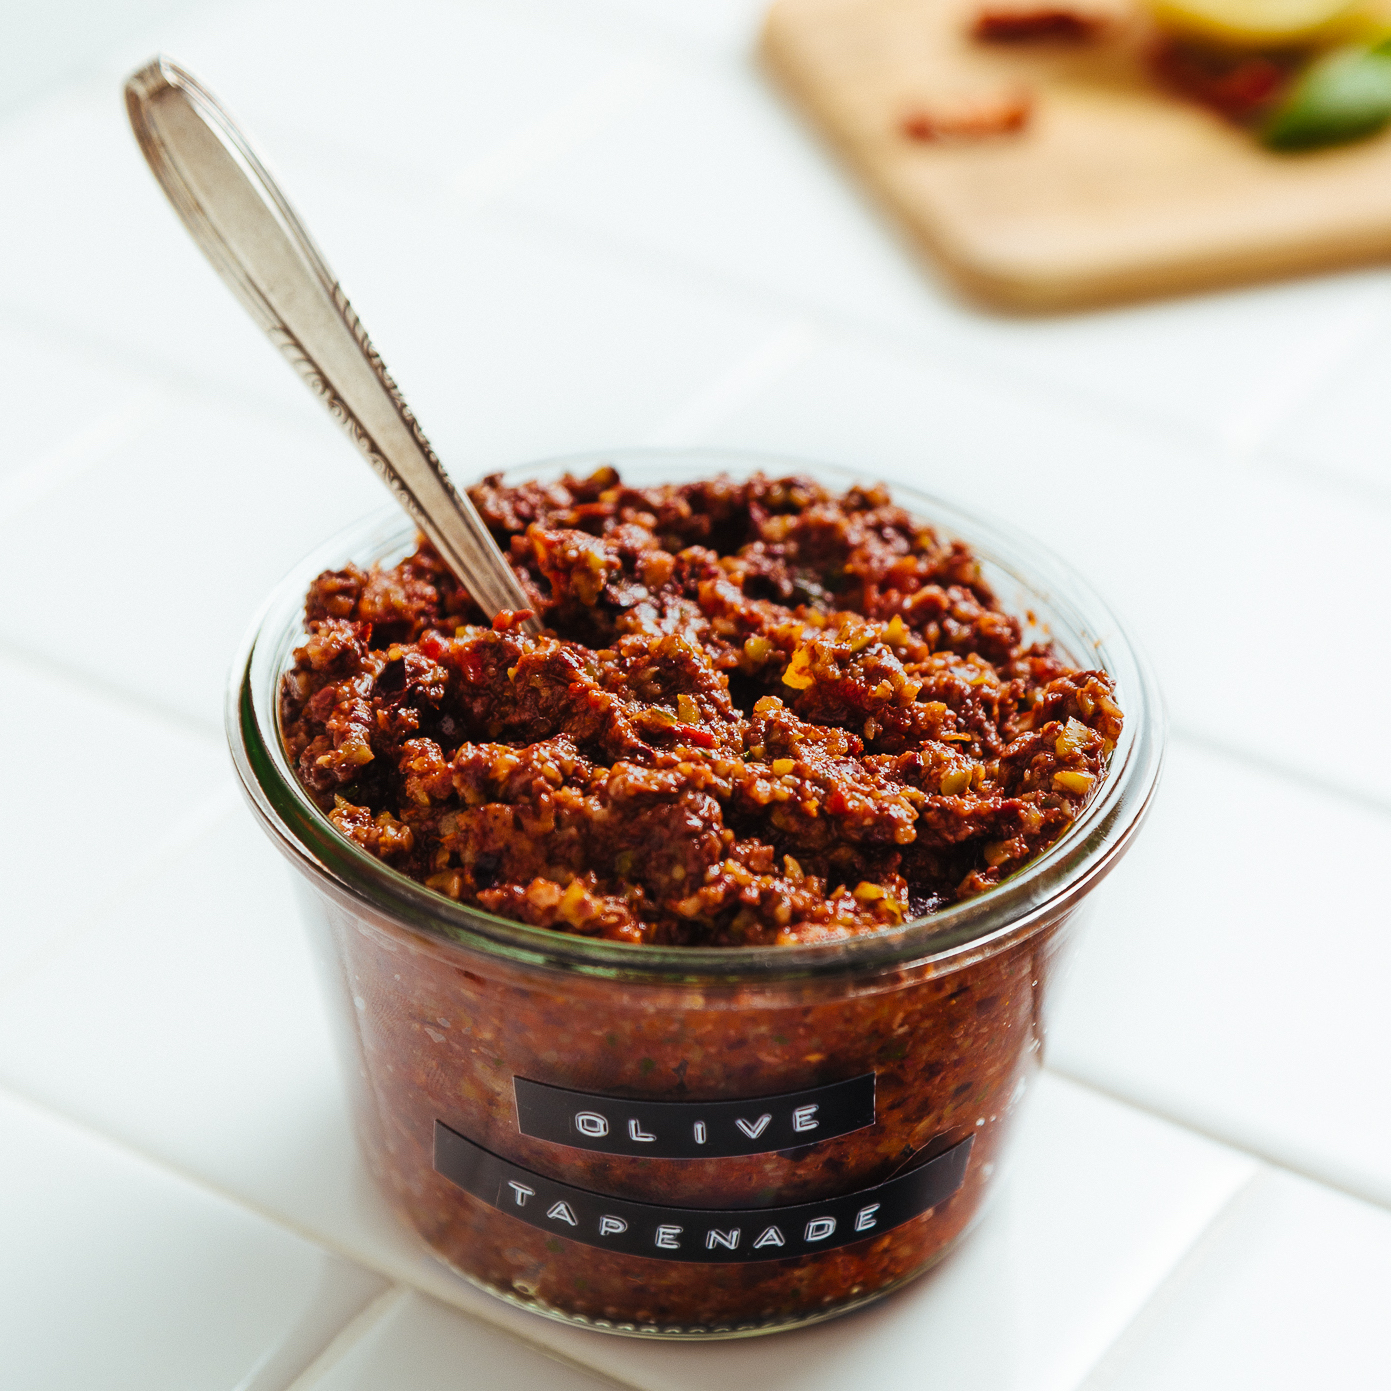 Jar of Sun-Dried Tomato and Basil Olive Tapenade for spreading on crackers or vegetables